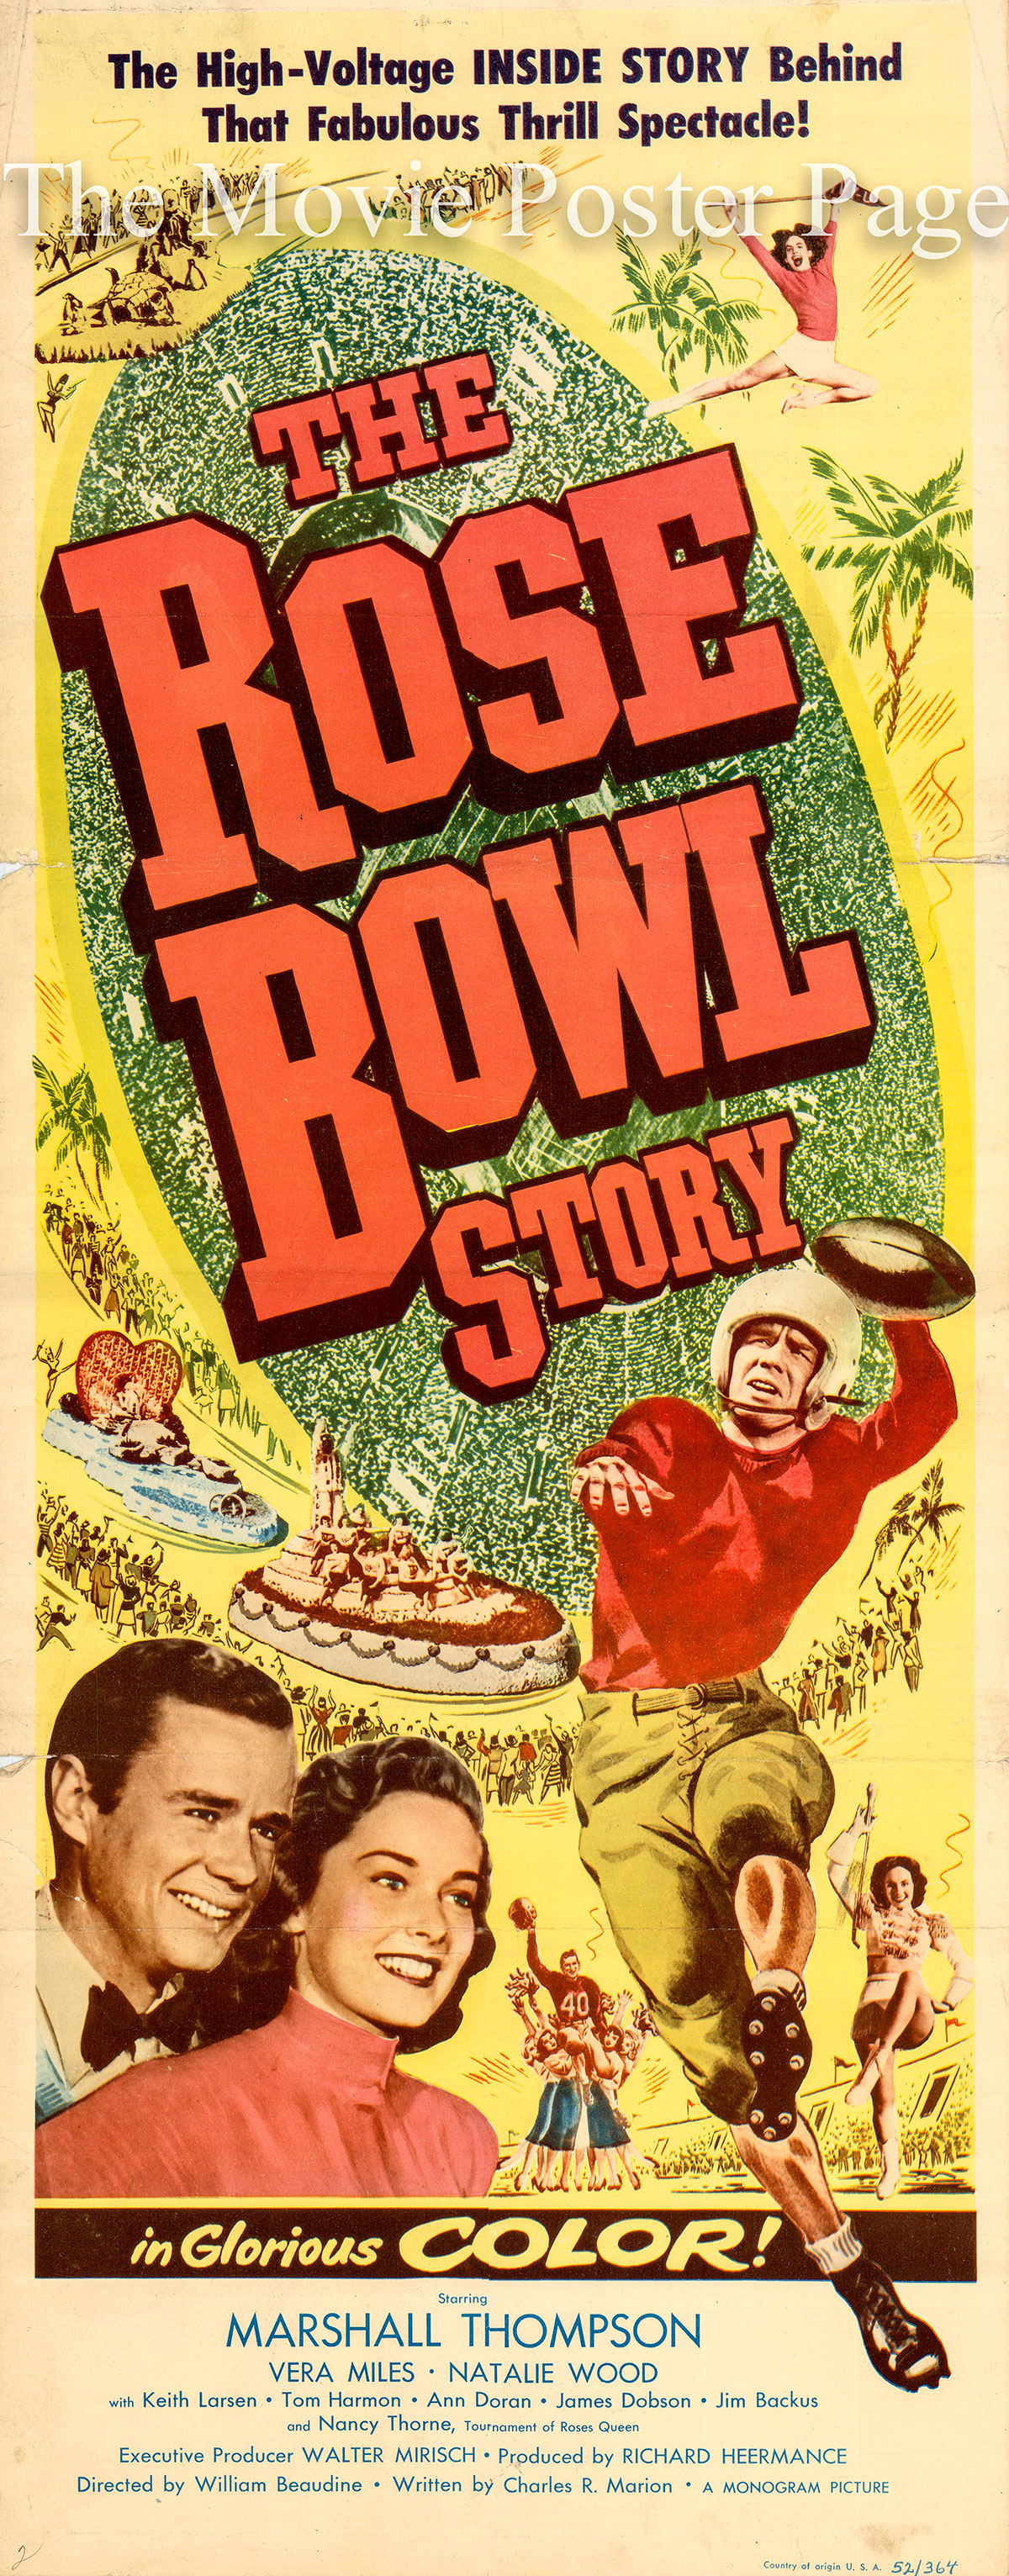 Pictured is a US insert promotional poster for the 1952 William Beaudine film The Rose Bowl Story starring Marshall Thompson.